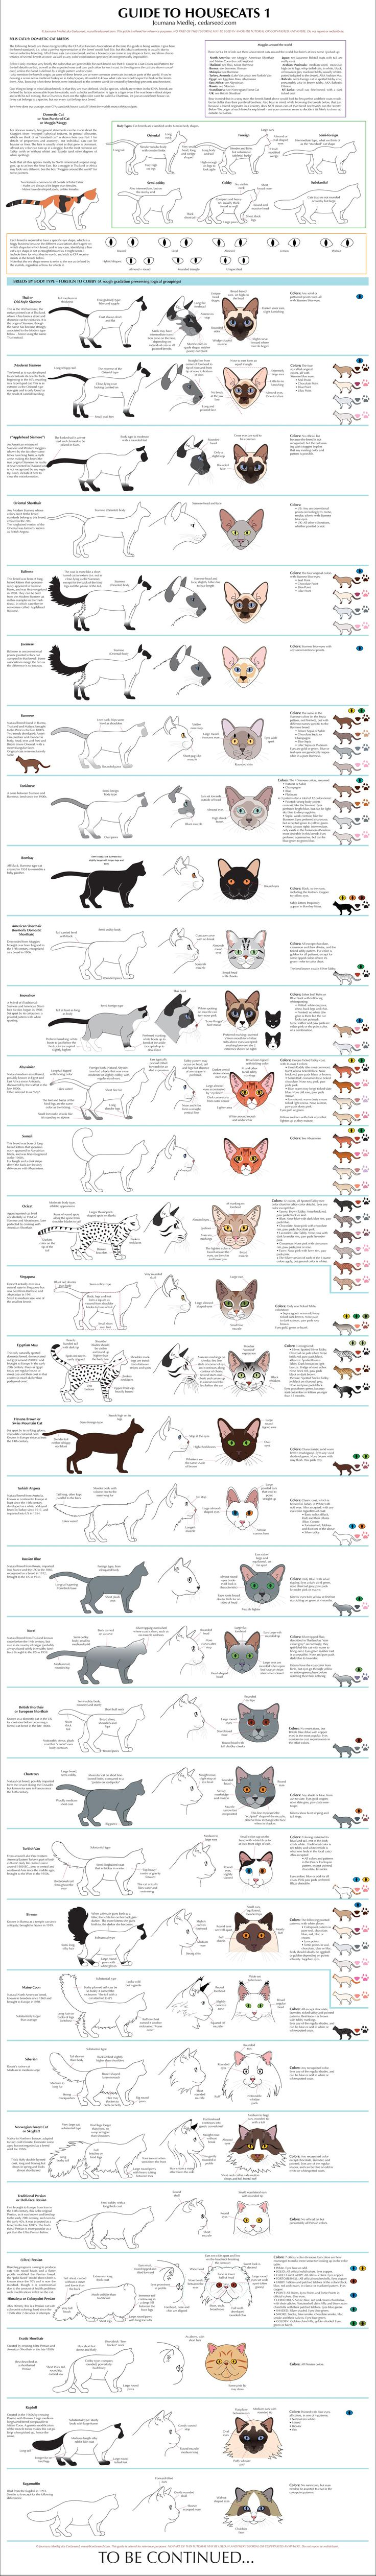 guide to draw housecats - nice quality tutorial